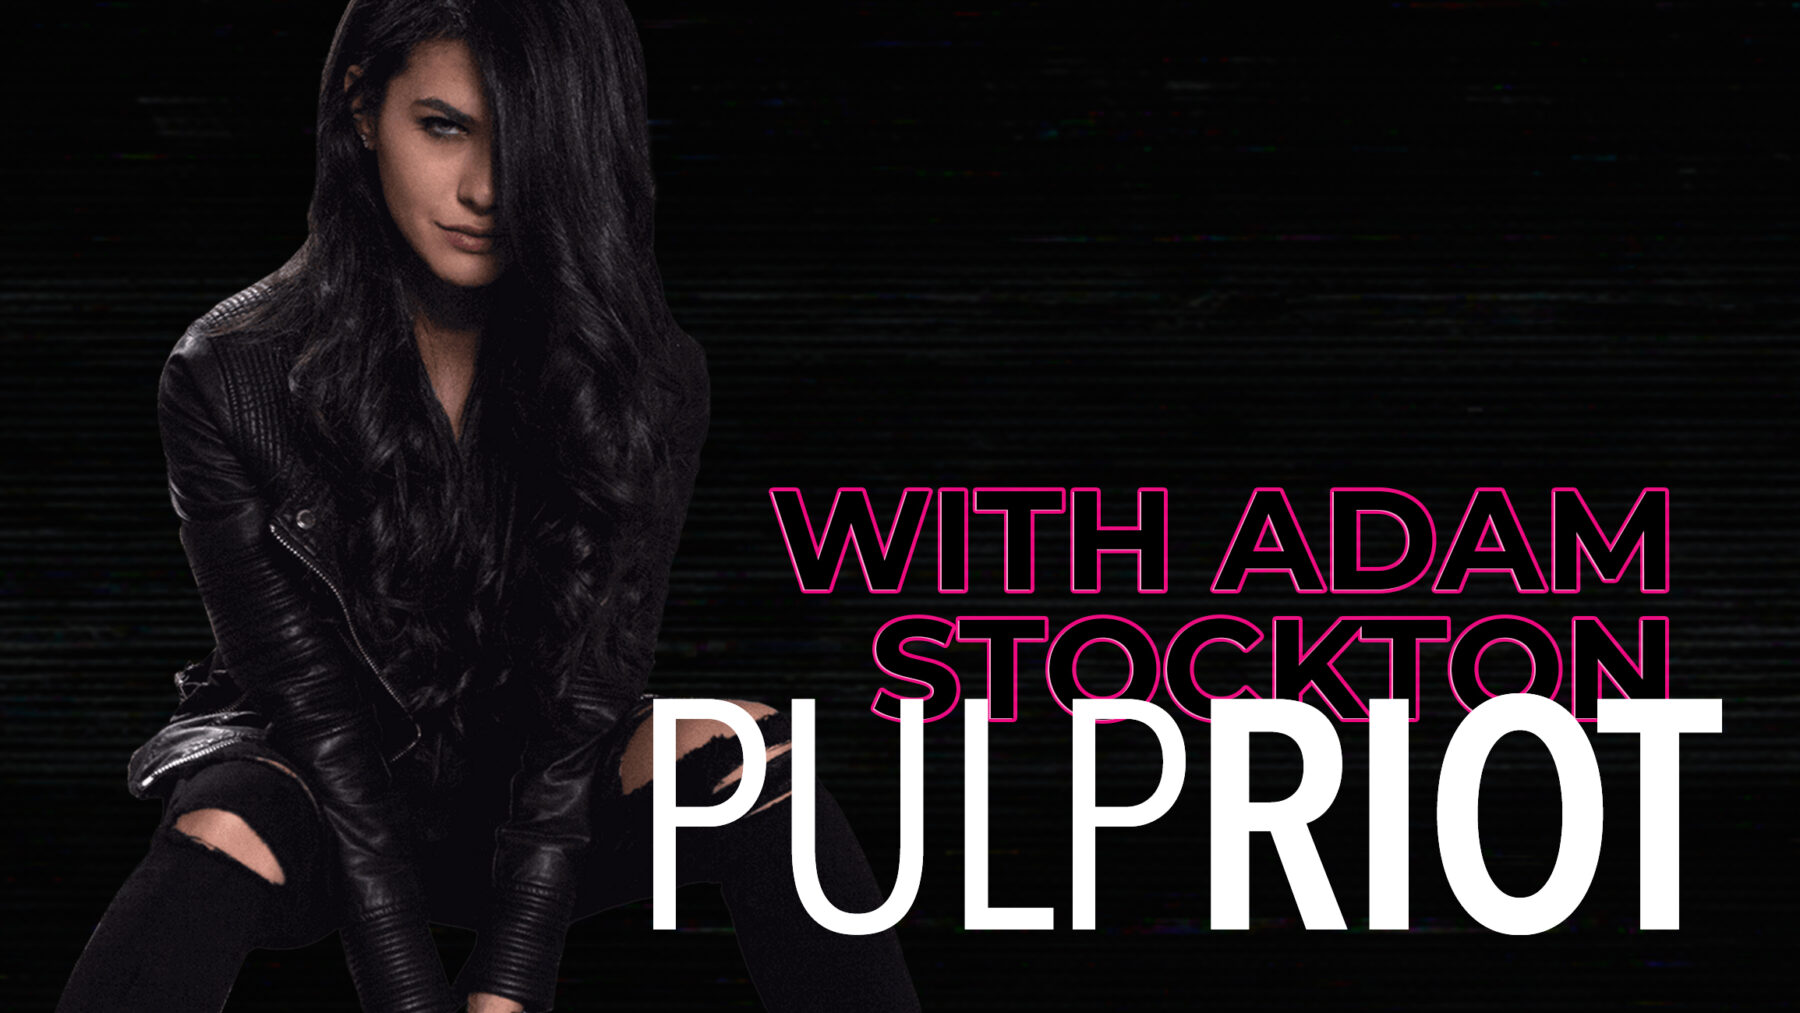 Pulp Riot with Adam Stockton